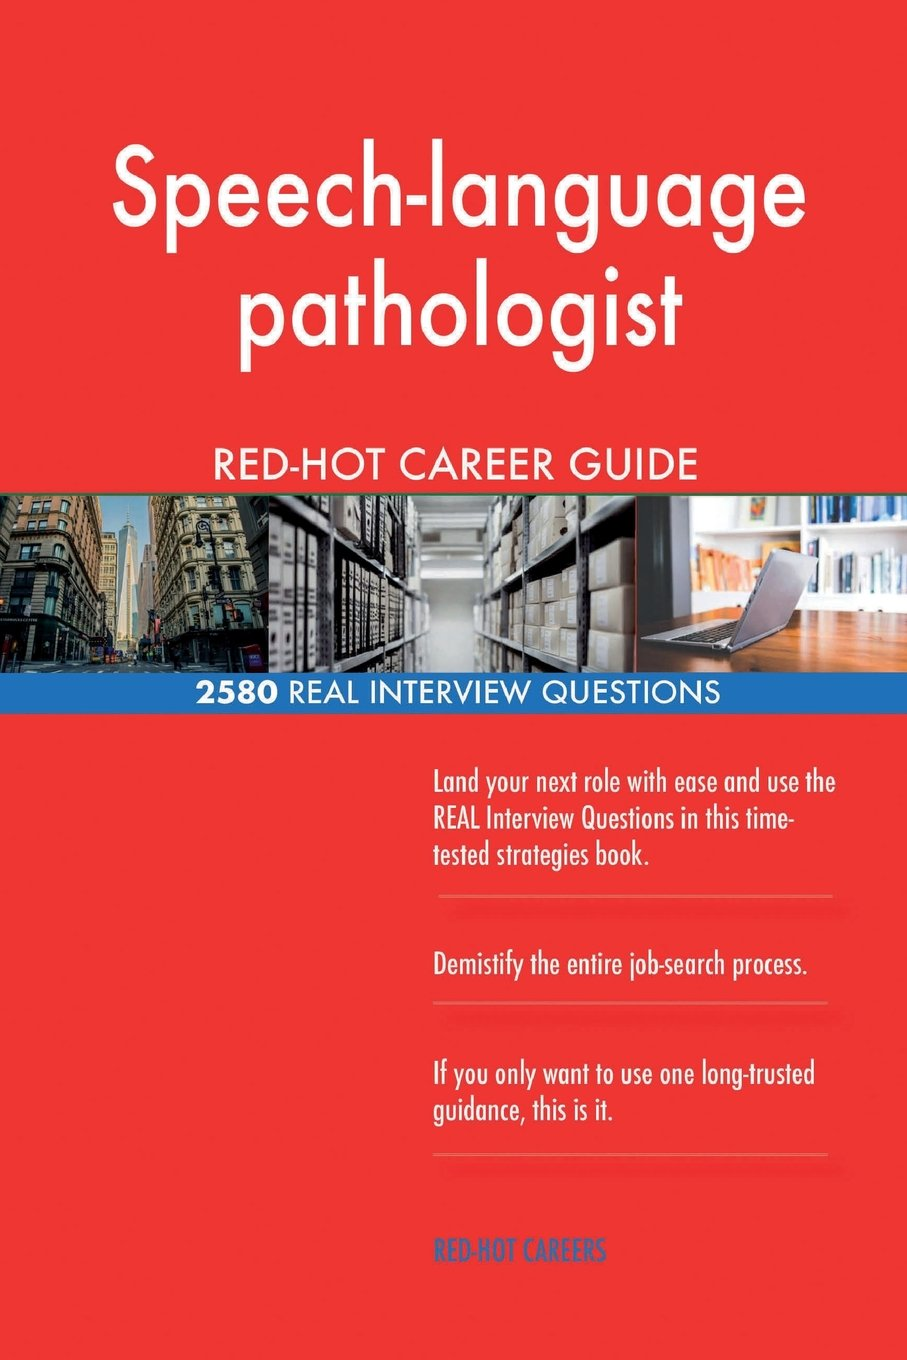 Speech-language pathologist RED-HOT Career Guide; 2580 REAL Interview Questions by CreateSpace Independent Publishing Platform